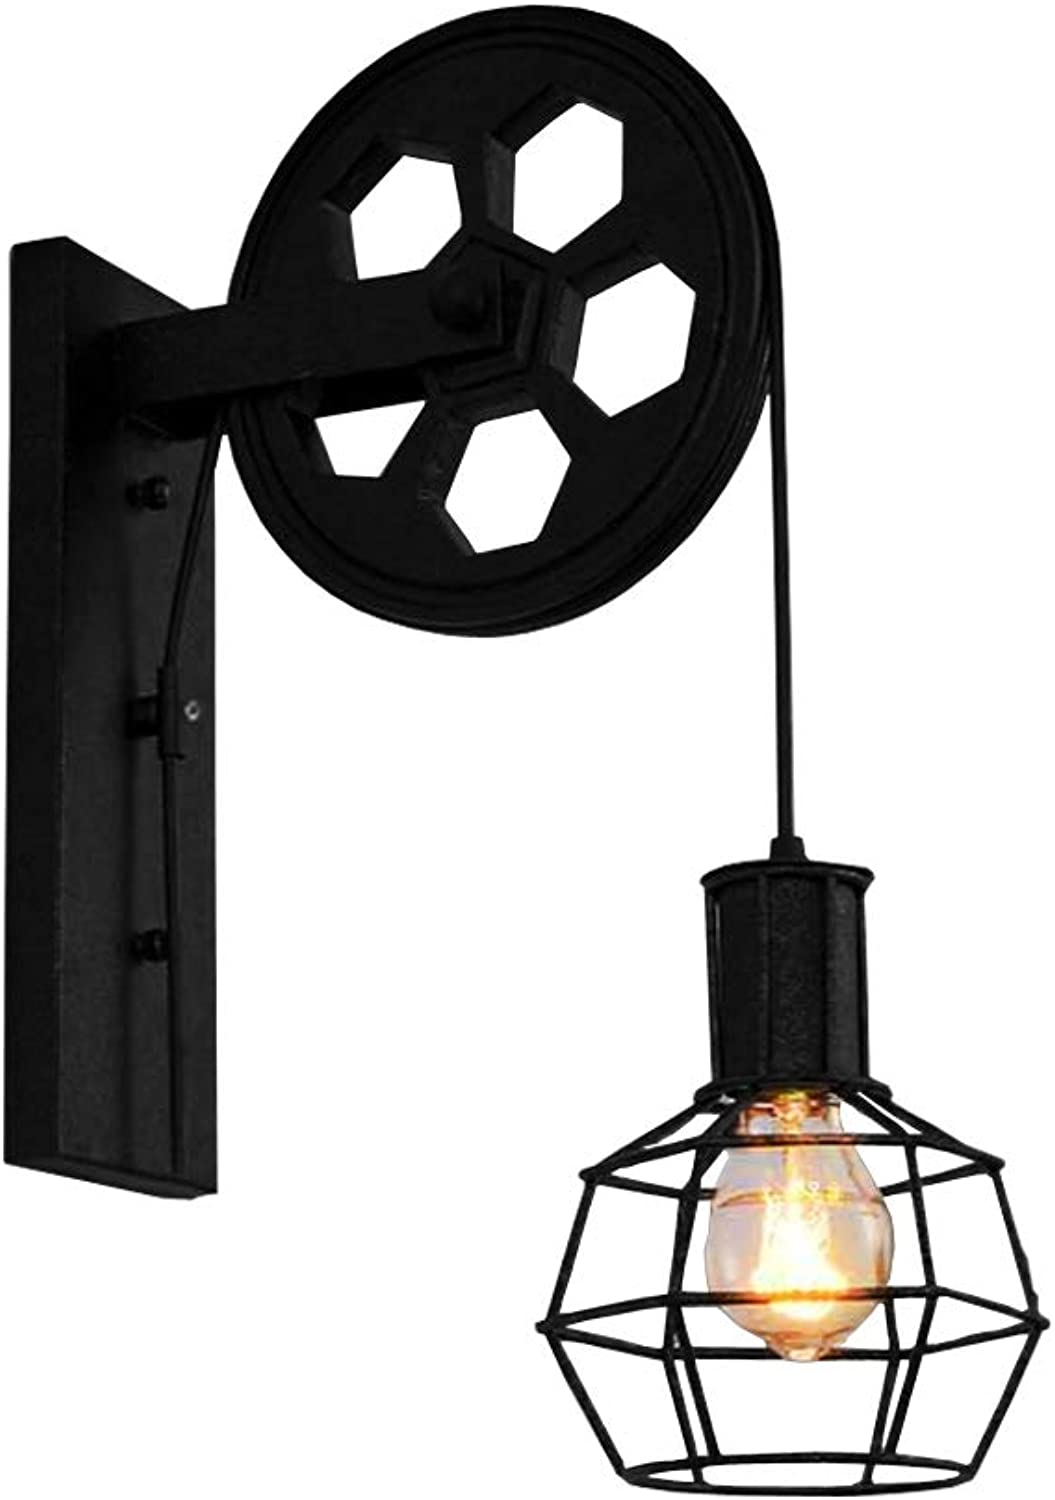 BAYCHEER HL471082 1 Light Wall Sconce Keyed Socket Pulley LED Industrial Wall Sconces Retro Wall Lights Fixture for Indoor Lighting Barn Restaurant in Black Finished